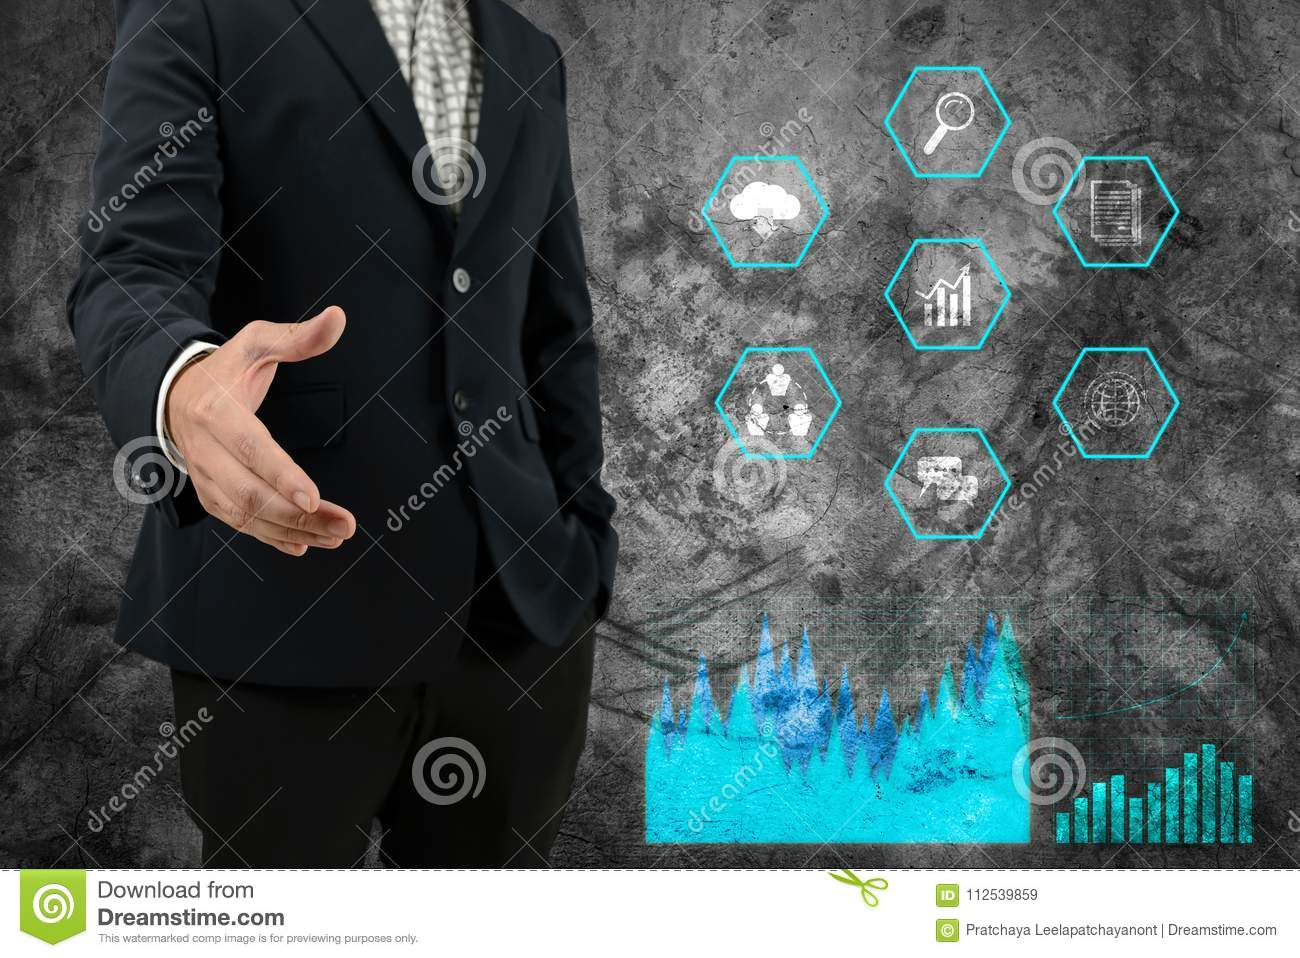 Businessman open hand for handshake to make business agreement with graph and business icons